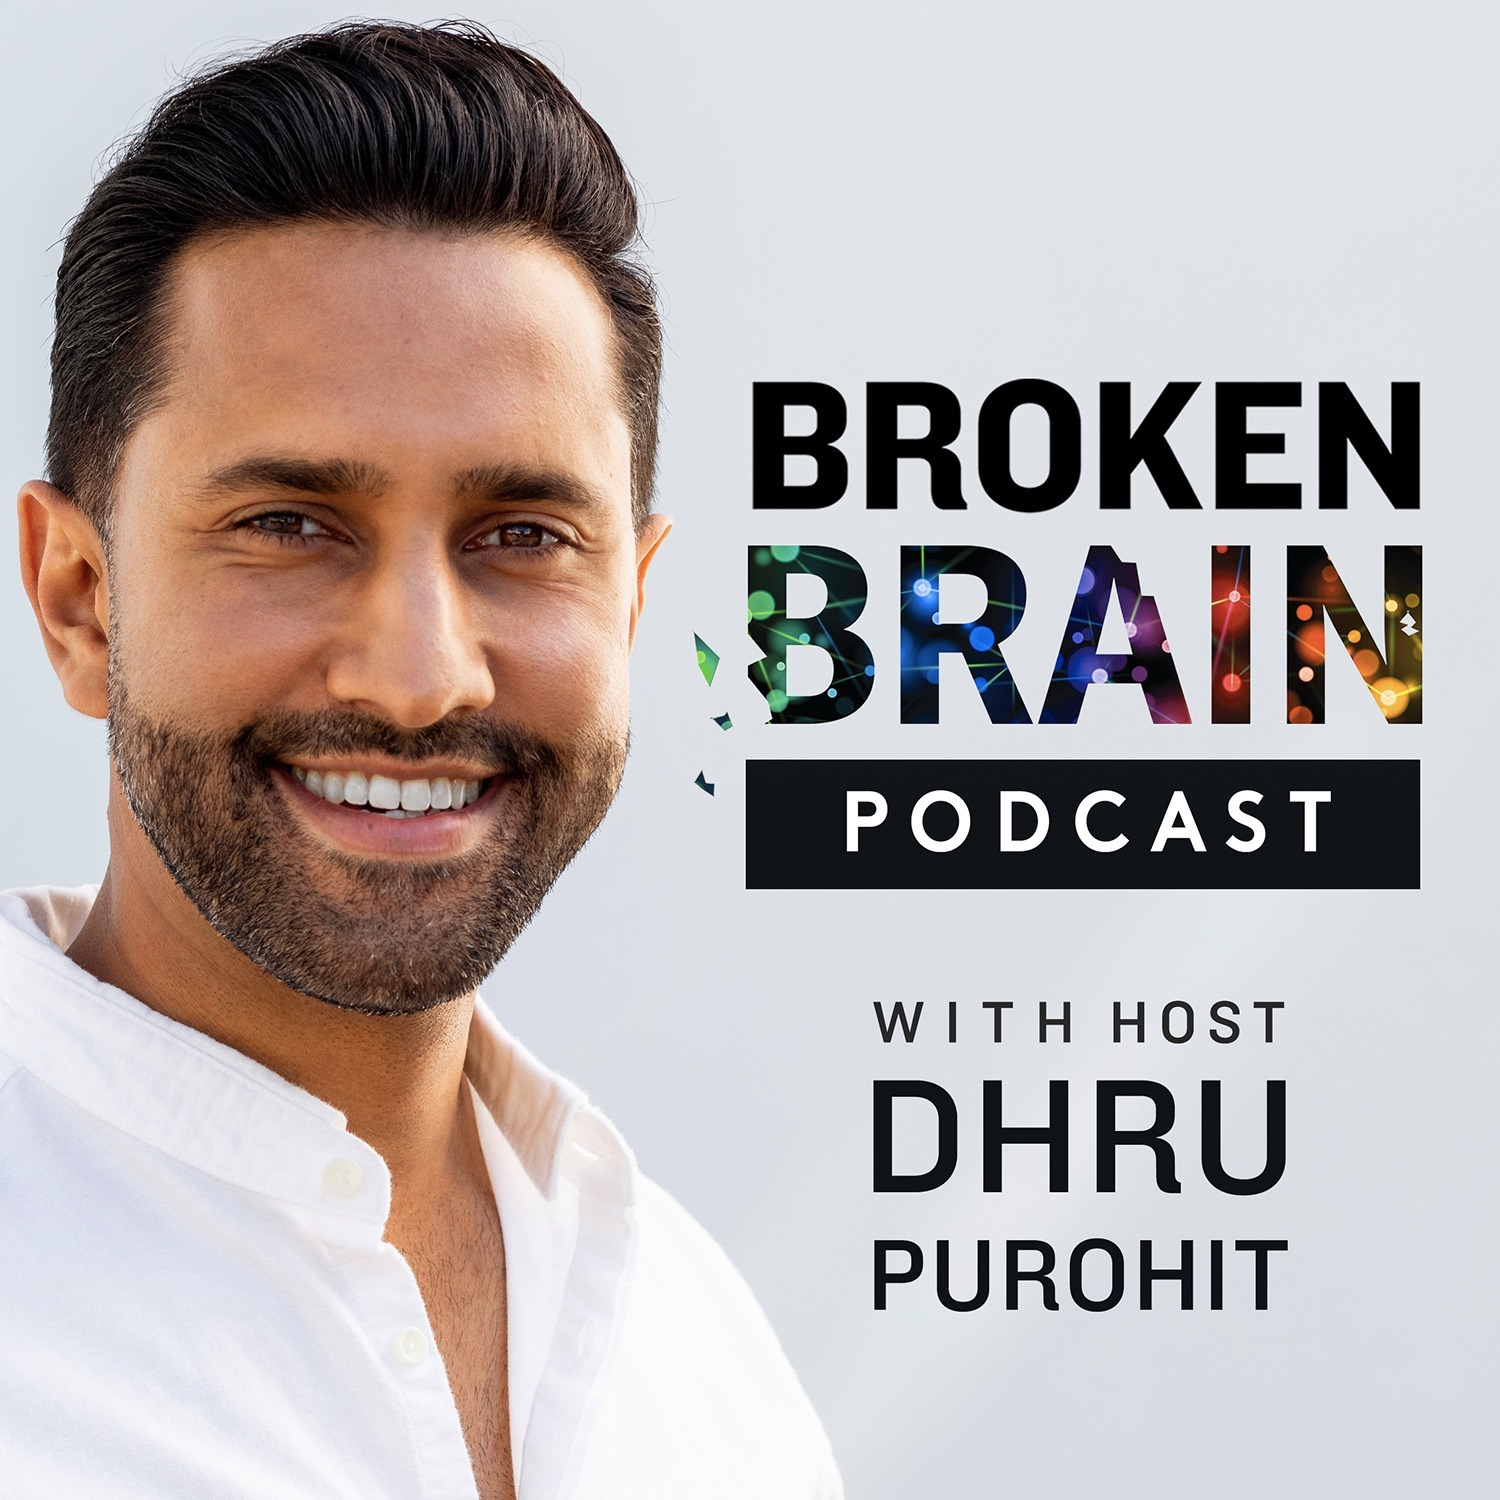 #109: How to Rewire Your Brain from Negative to Positive with Jon Gordon